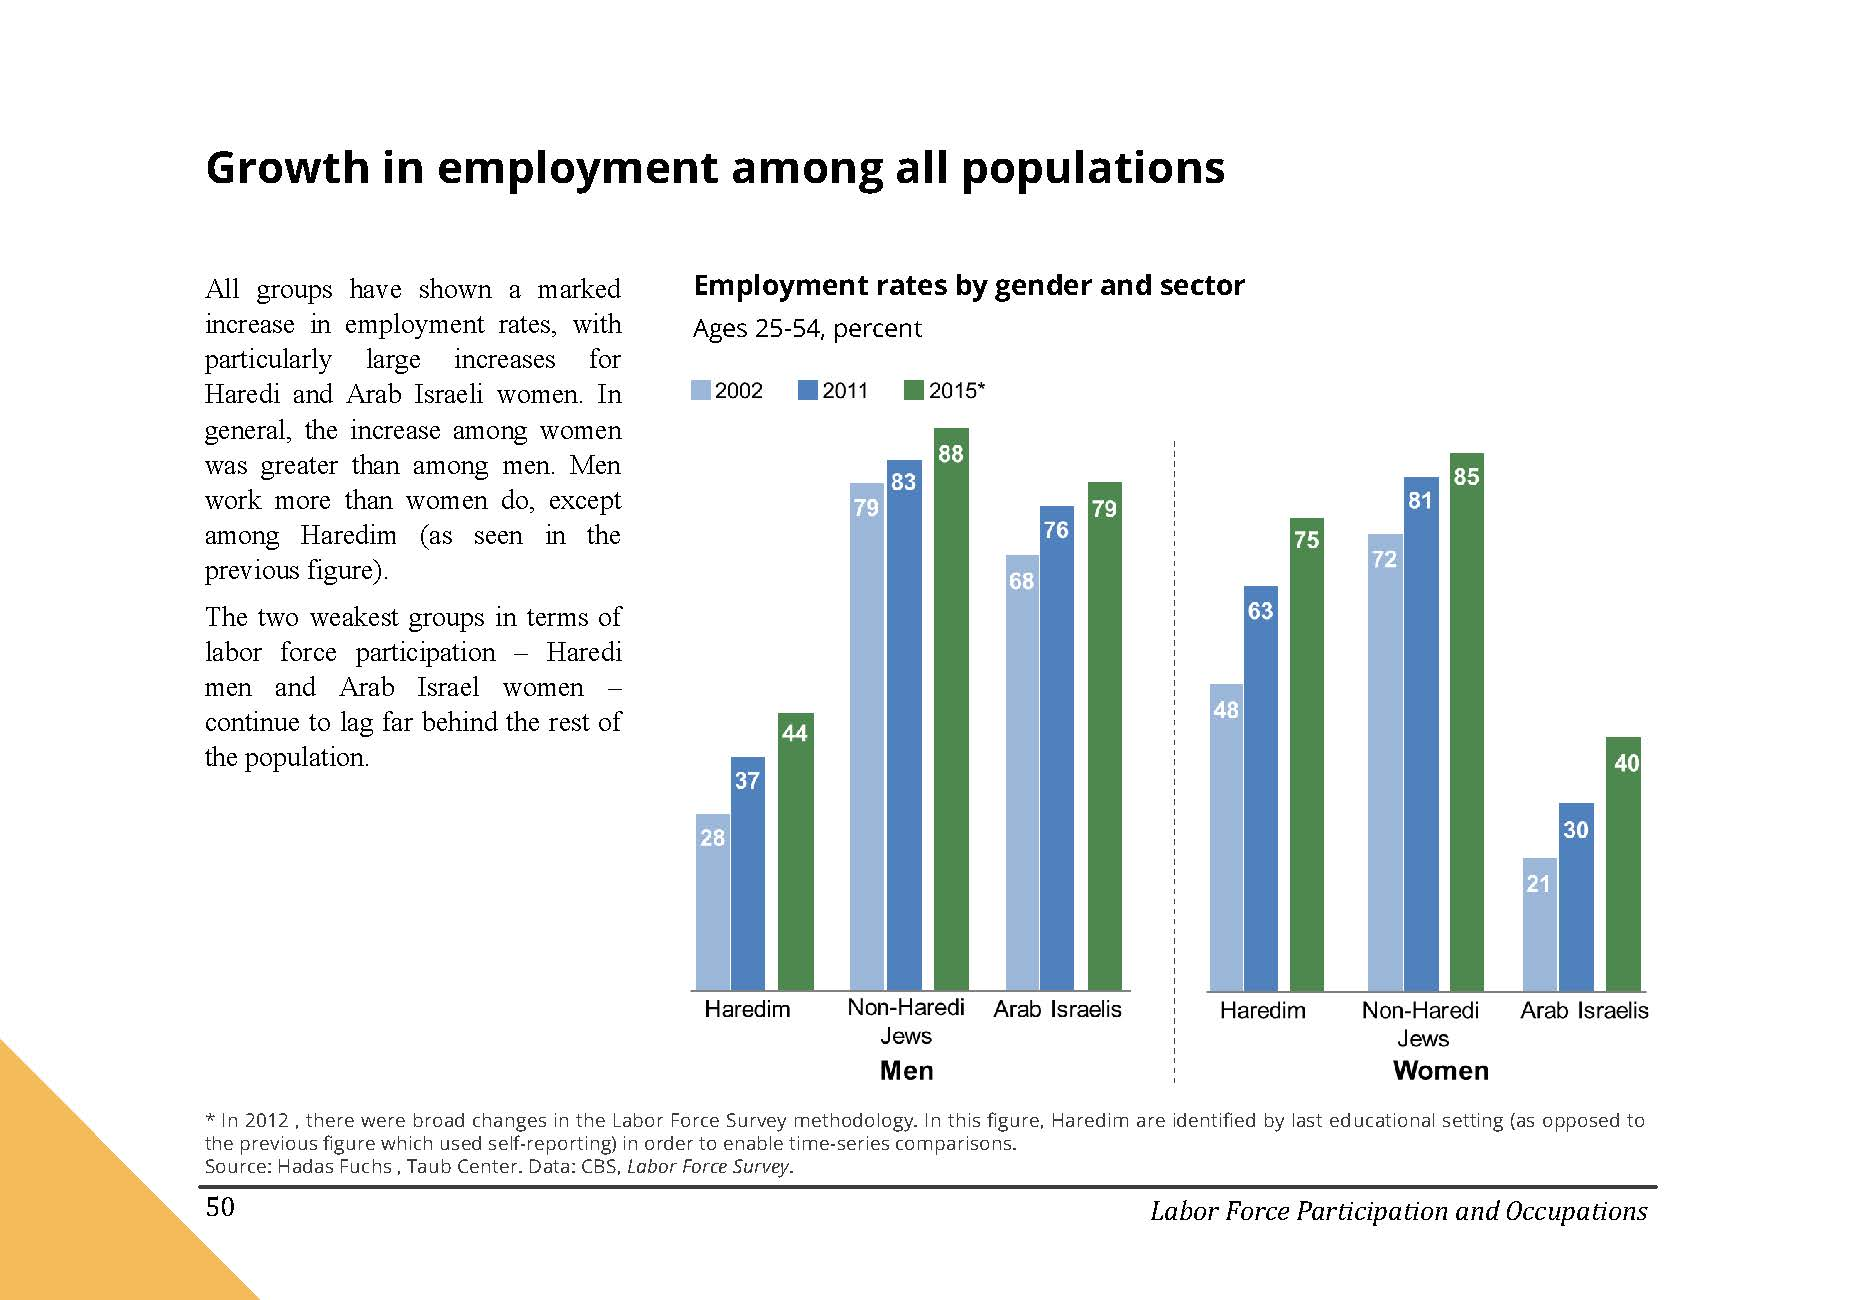 There has been Growth in employment among all populations in Israel